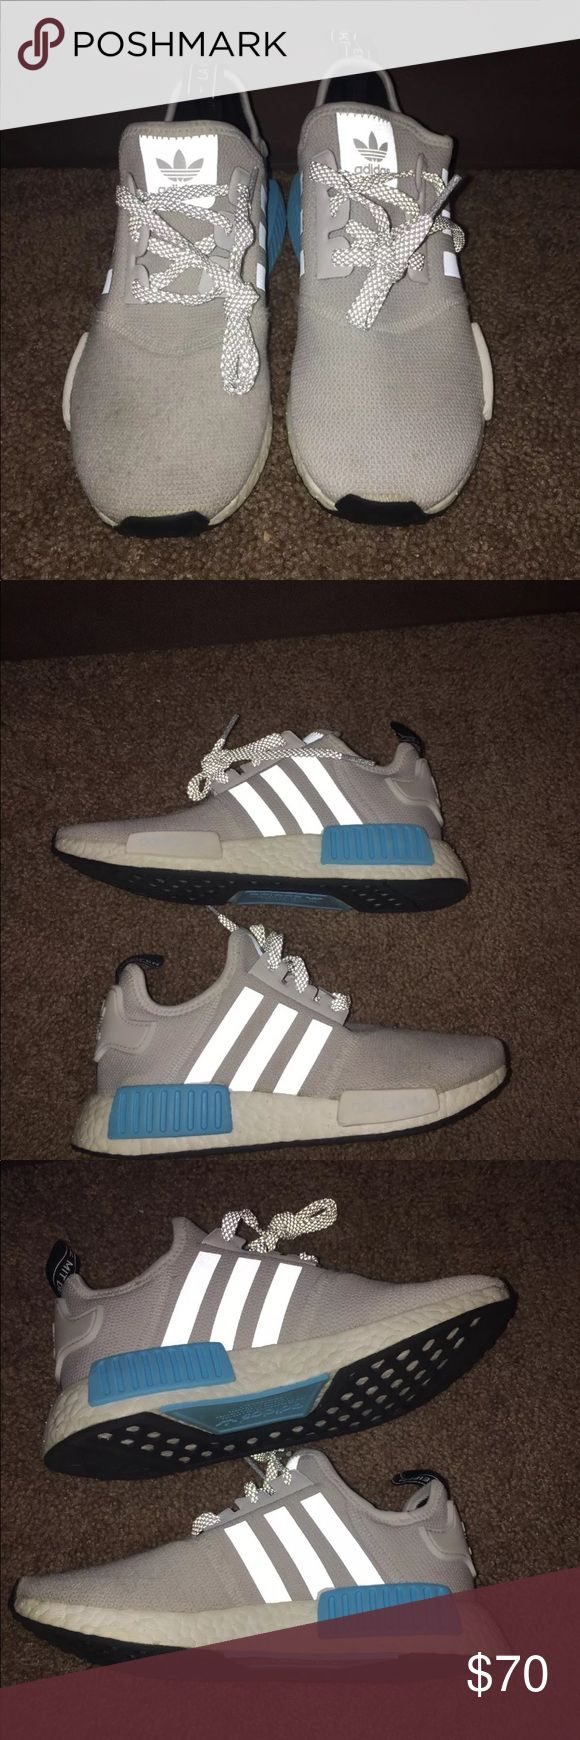 """Adidas NMD Primeknit Boost Pre owned worn a few times . If you are a nmd collector you know the shoes are partially made of a knit material so some """"fuzzing """" may occur . The front has some but can easily be removed and is barely visible (see pic). The box will not come with shoes . Feel free to ask me any questions. Womens 5.5 . Men's 4.5 adidas Shoes Sneakers"""